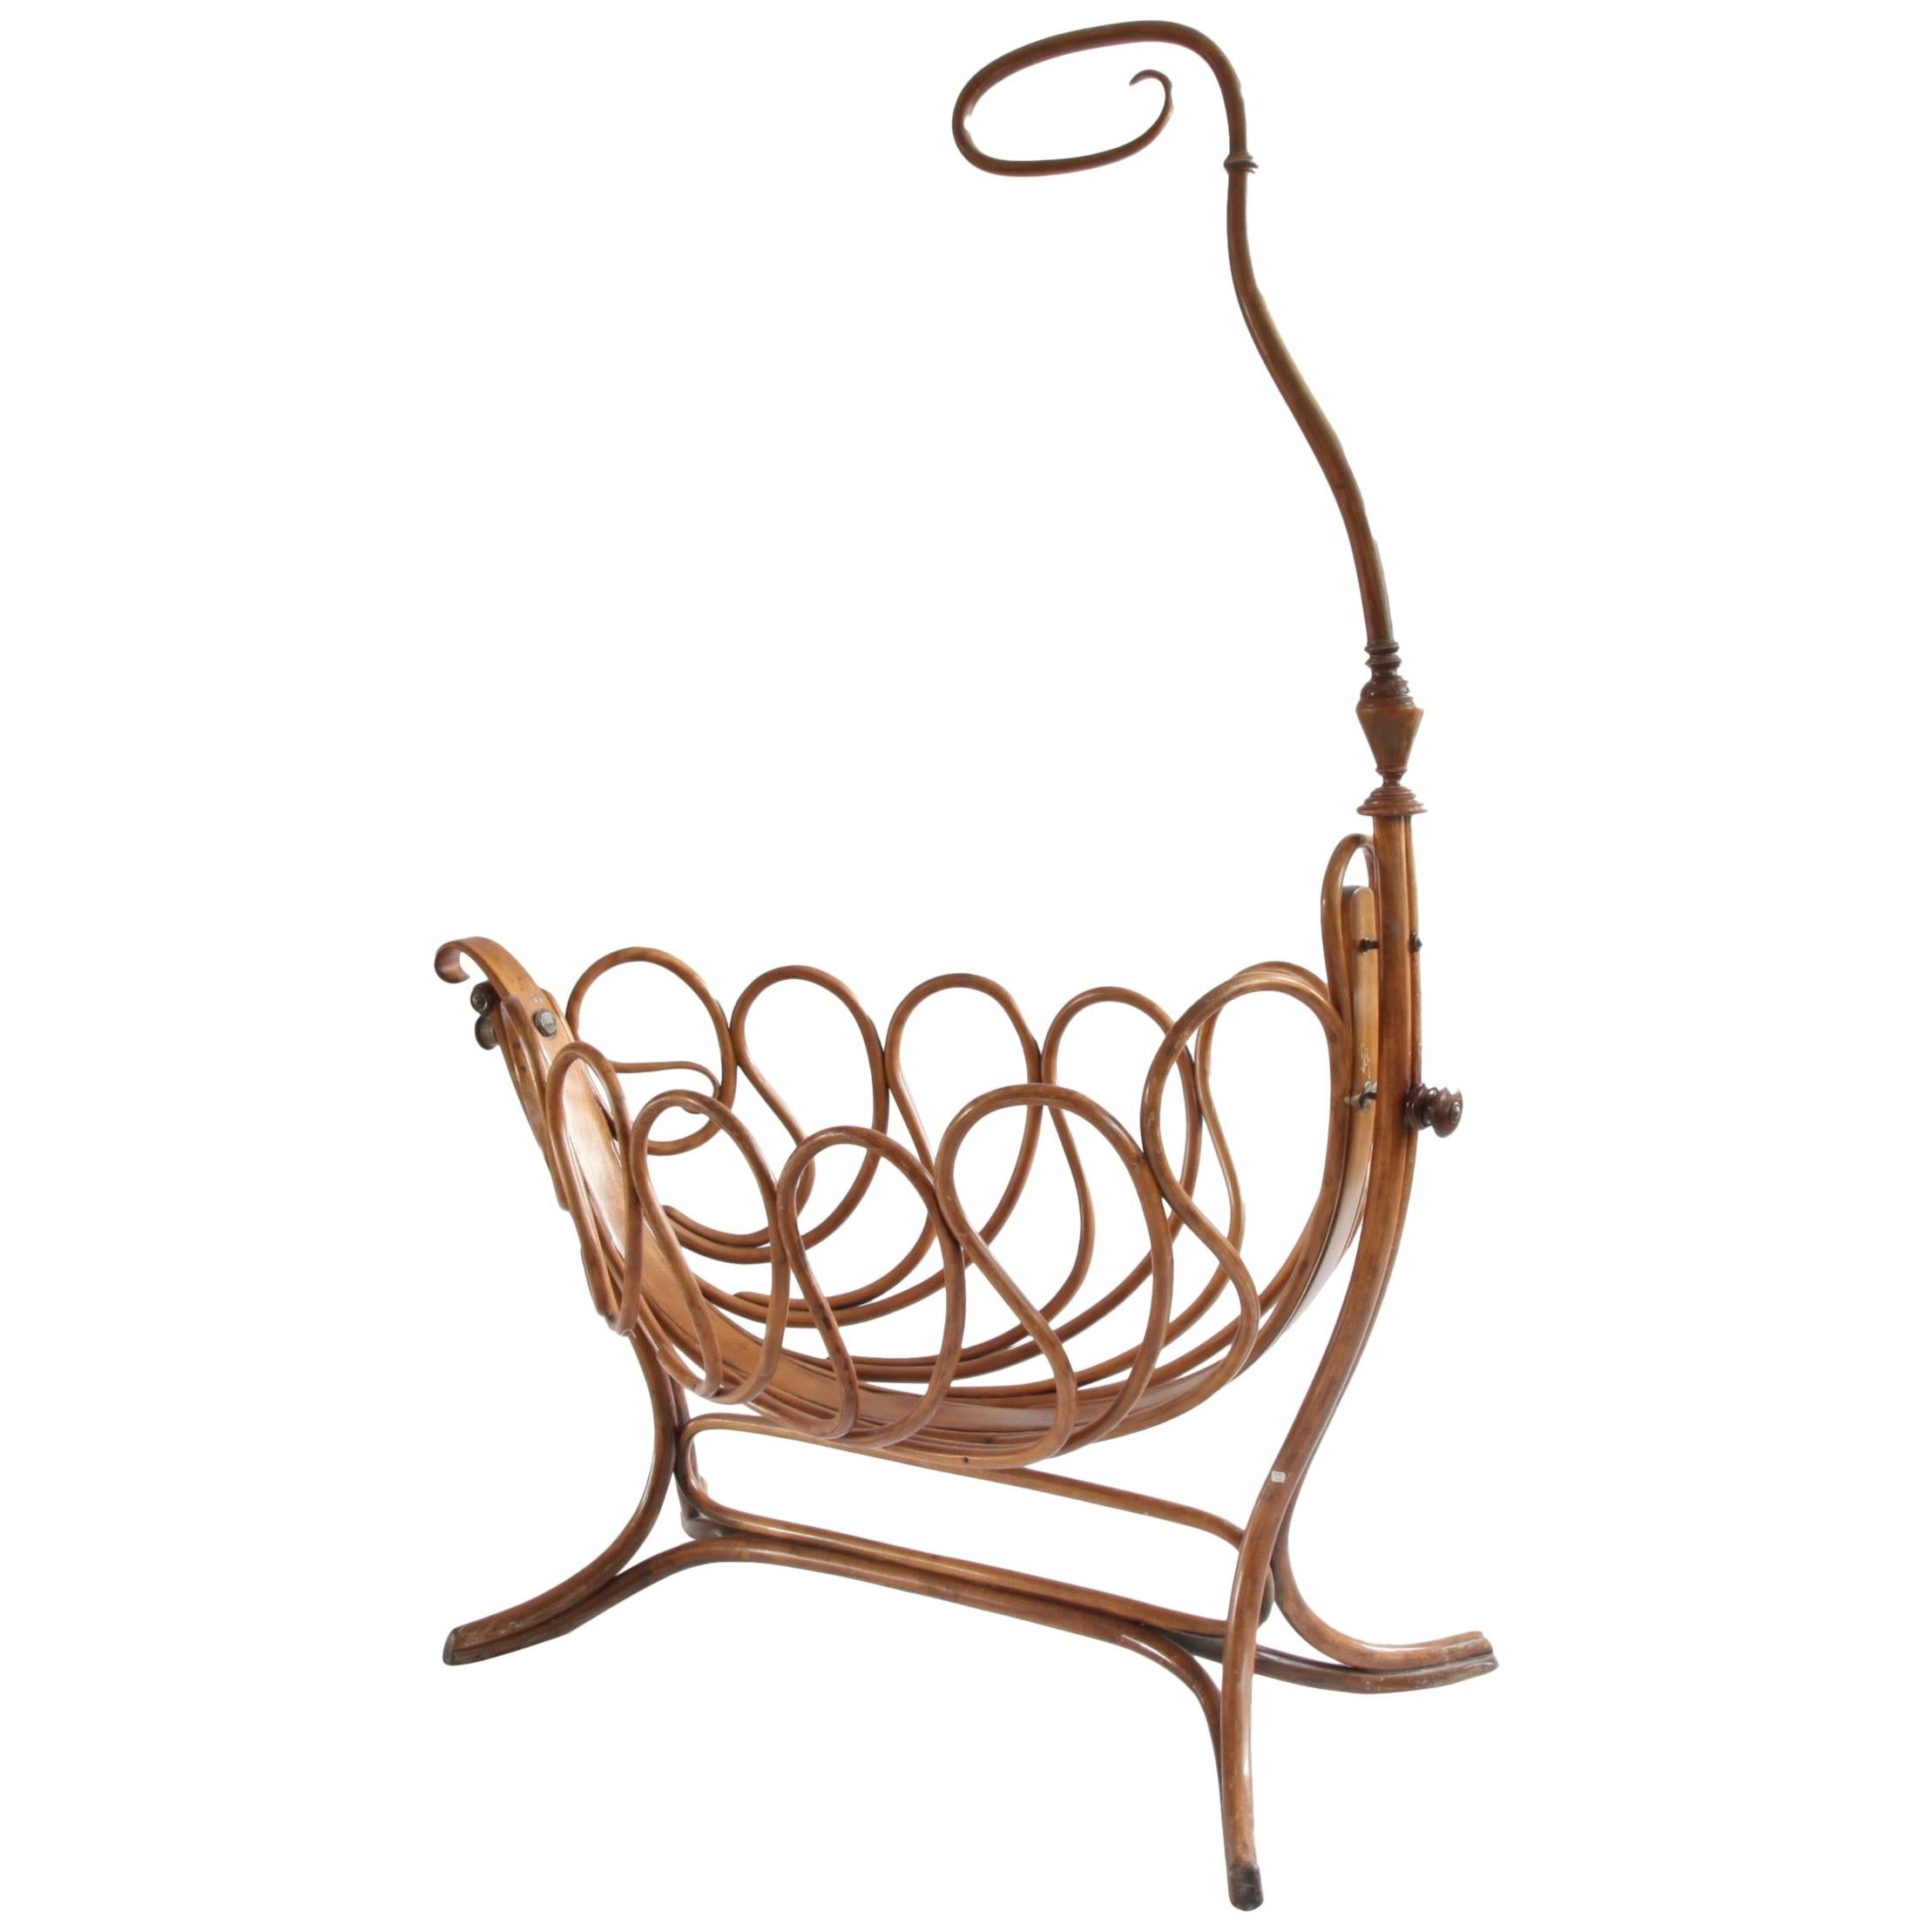 Rare French Bentwood Cradle in the Thonet Style, Late 19th Century